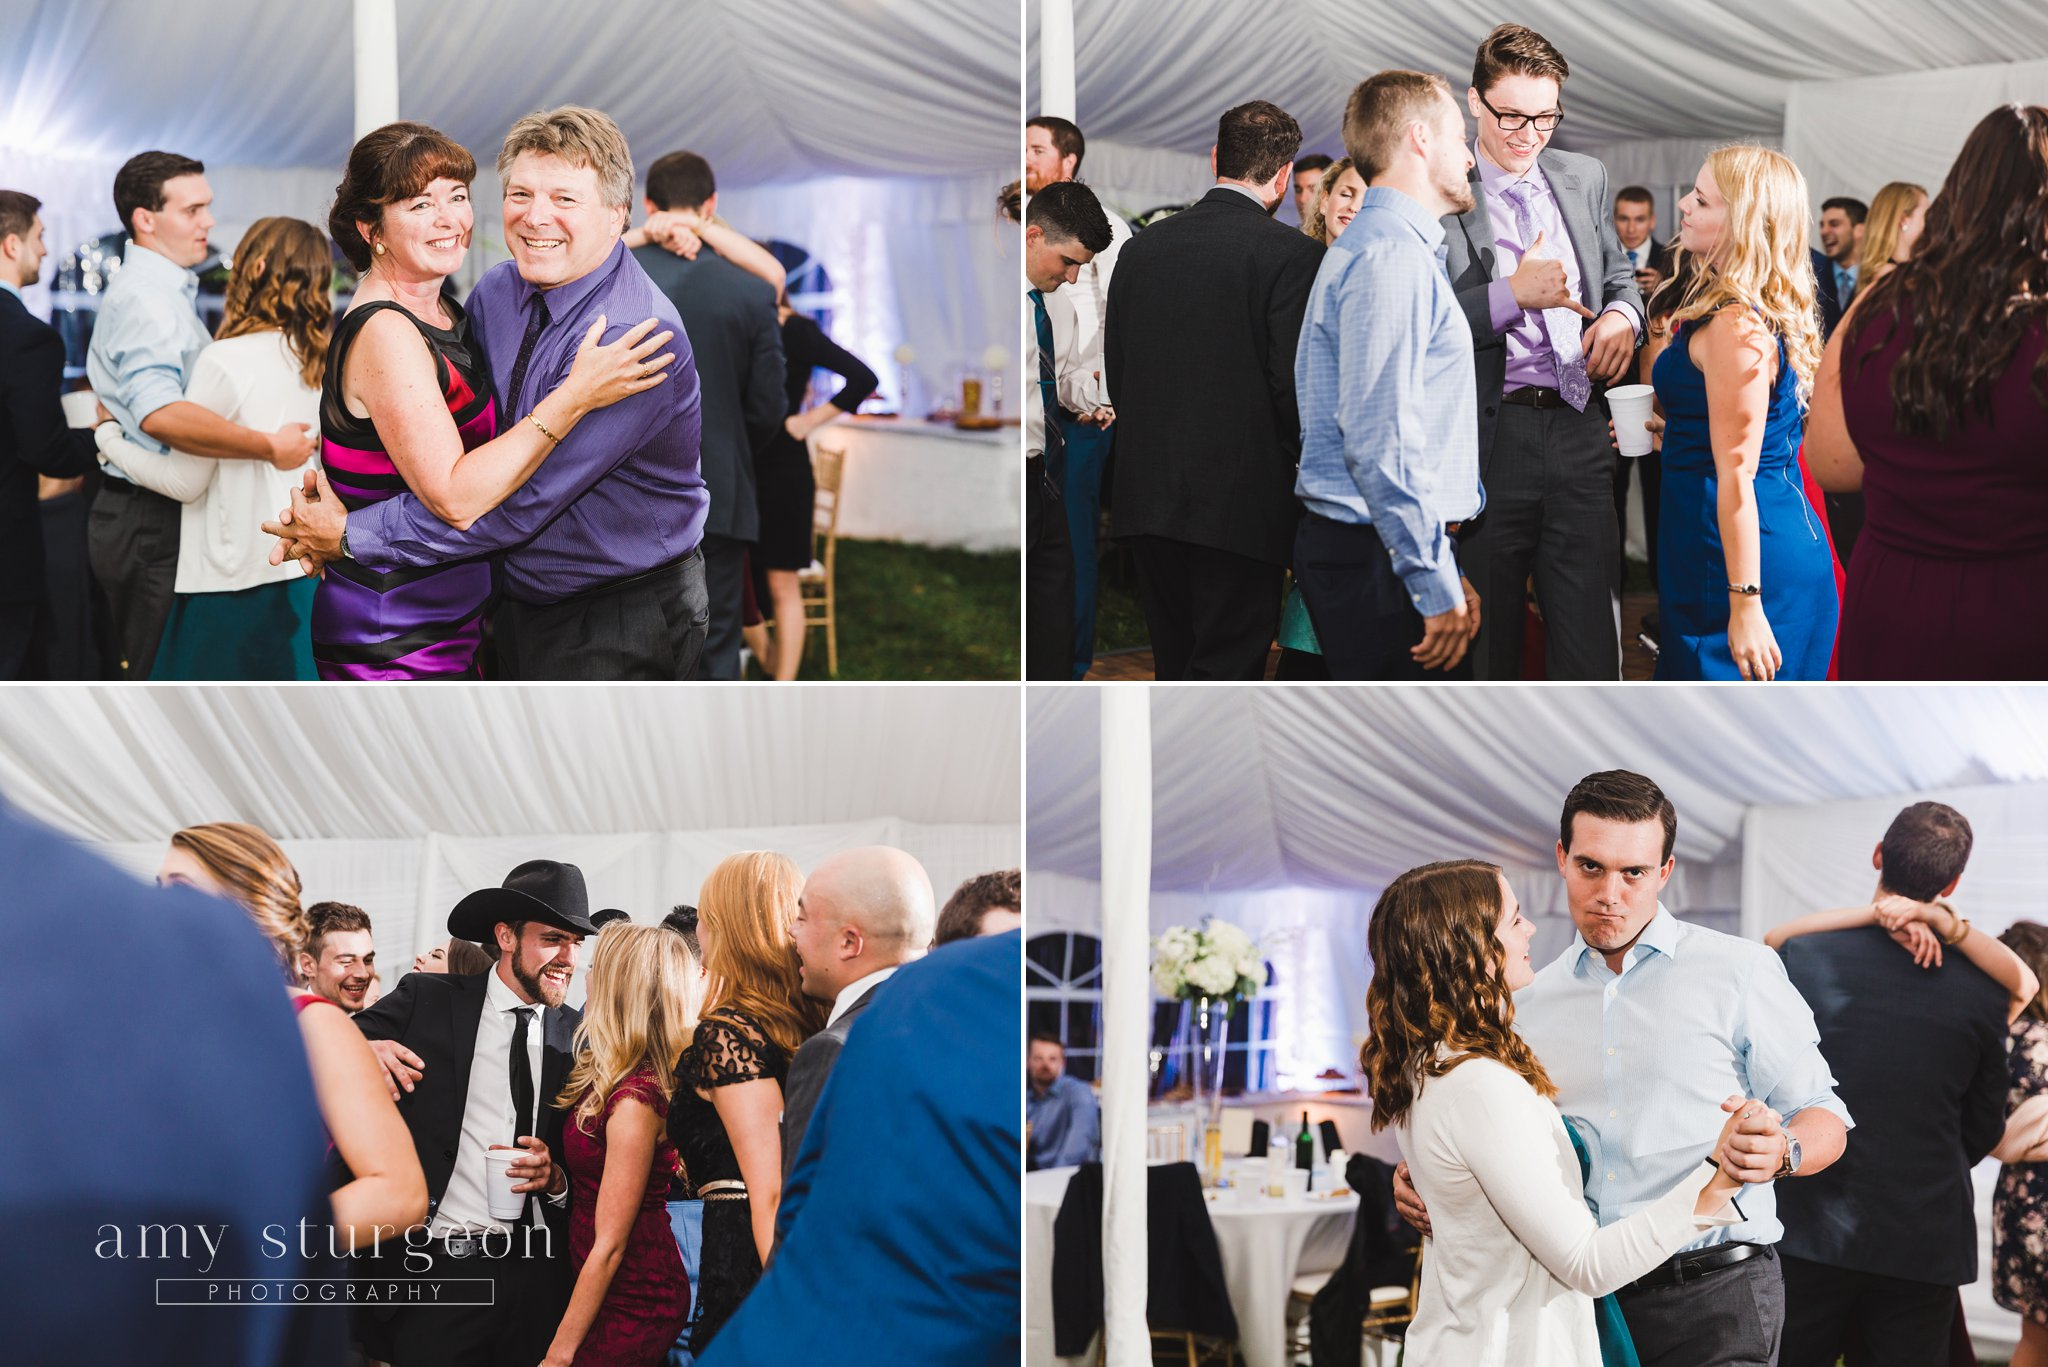 The guests had so much fun on the dance floor during the wedding reception at the alpaca farm wedding